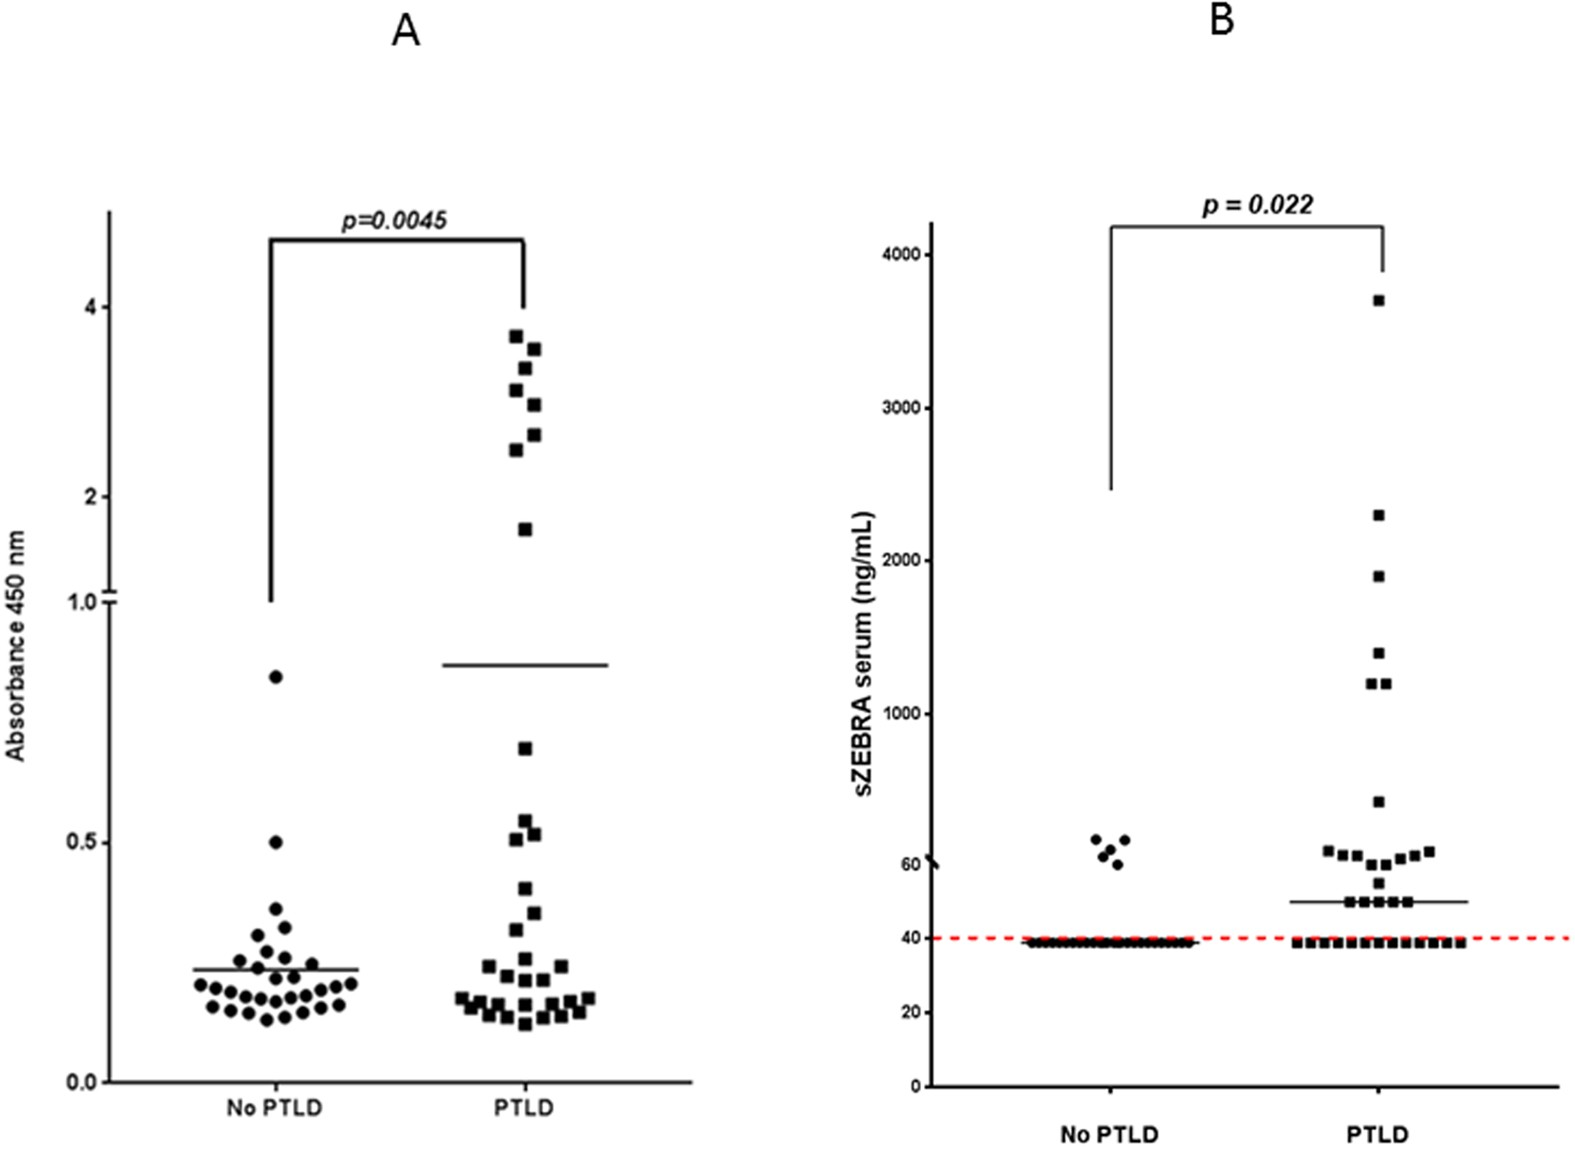 Lytic EBV Infection Investigated By Detection Of Soluble Epstein